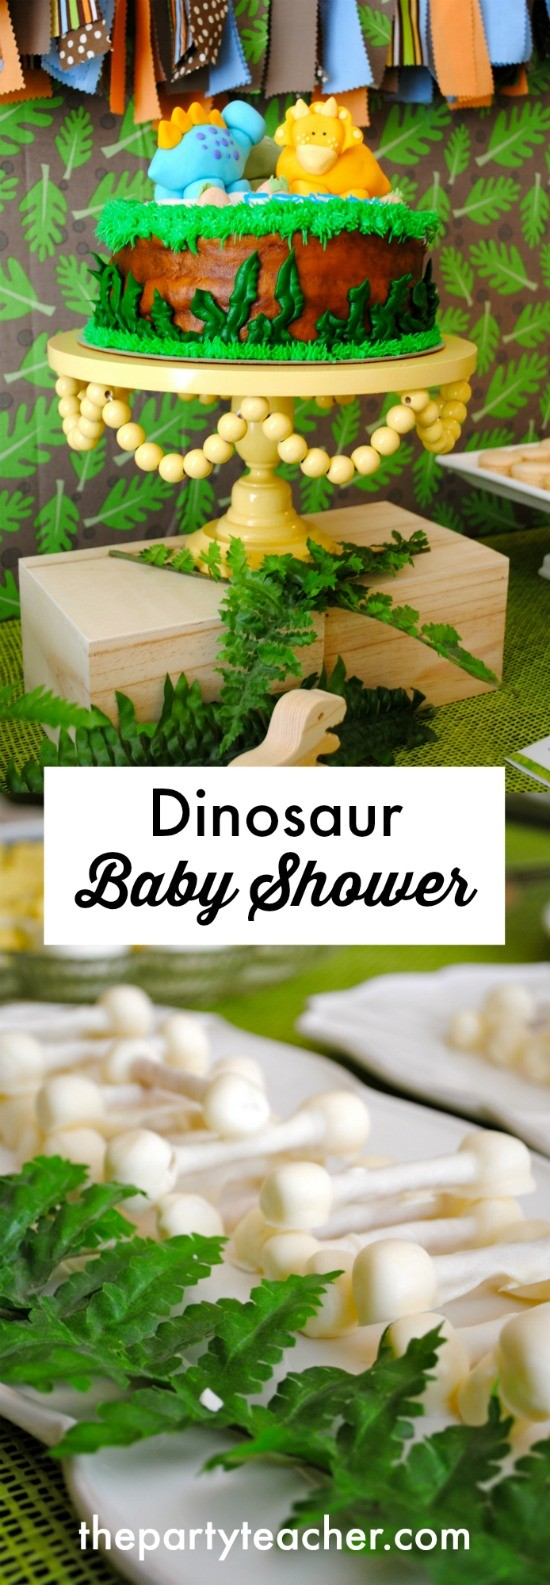 How to plan a dinosaur baby shower by The Party Teacher